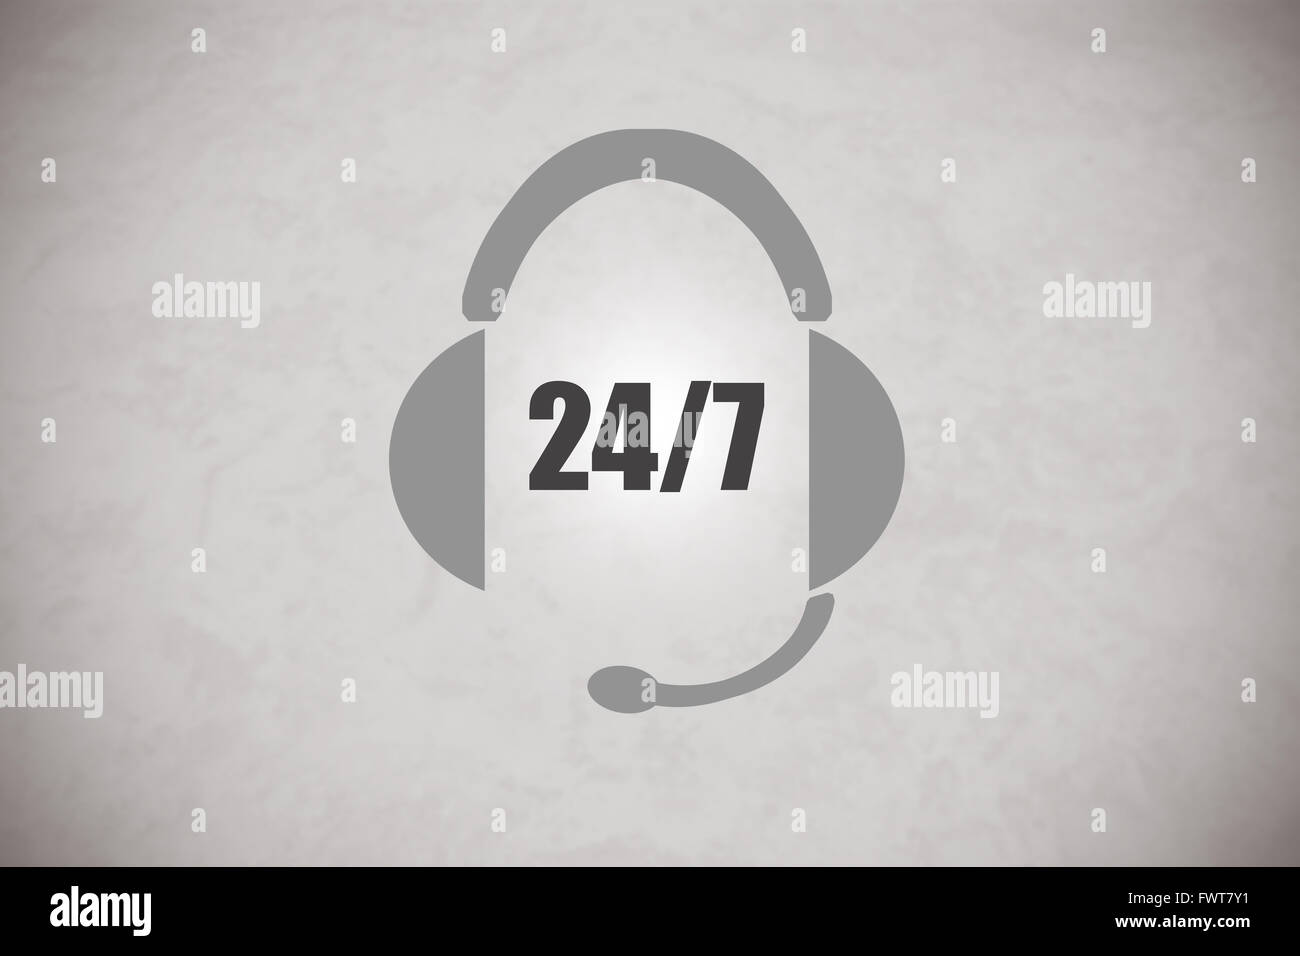 Image of an headset representing 24/7 support - Stock Image